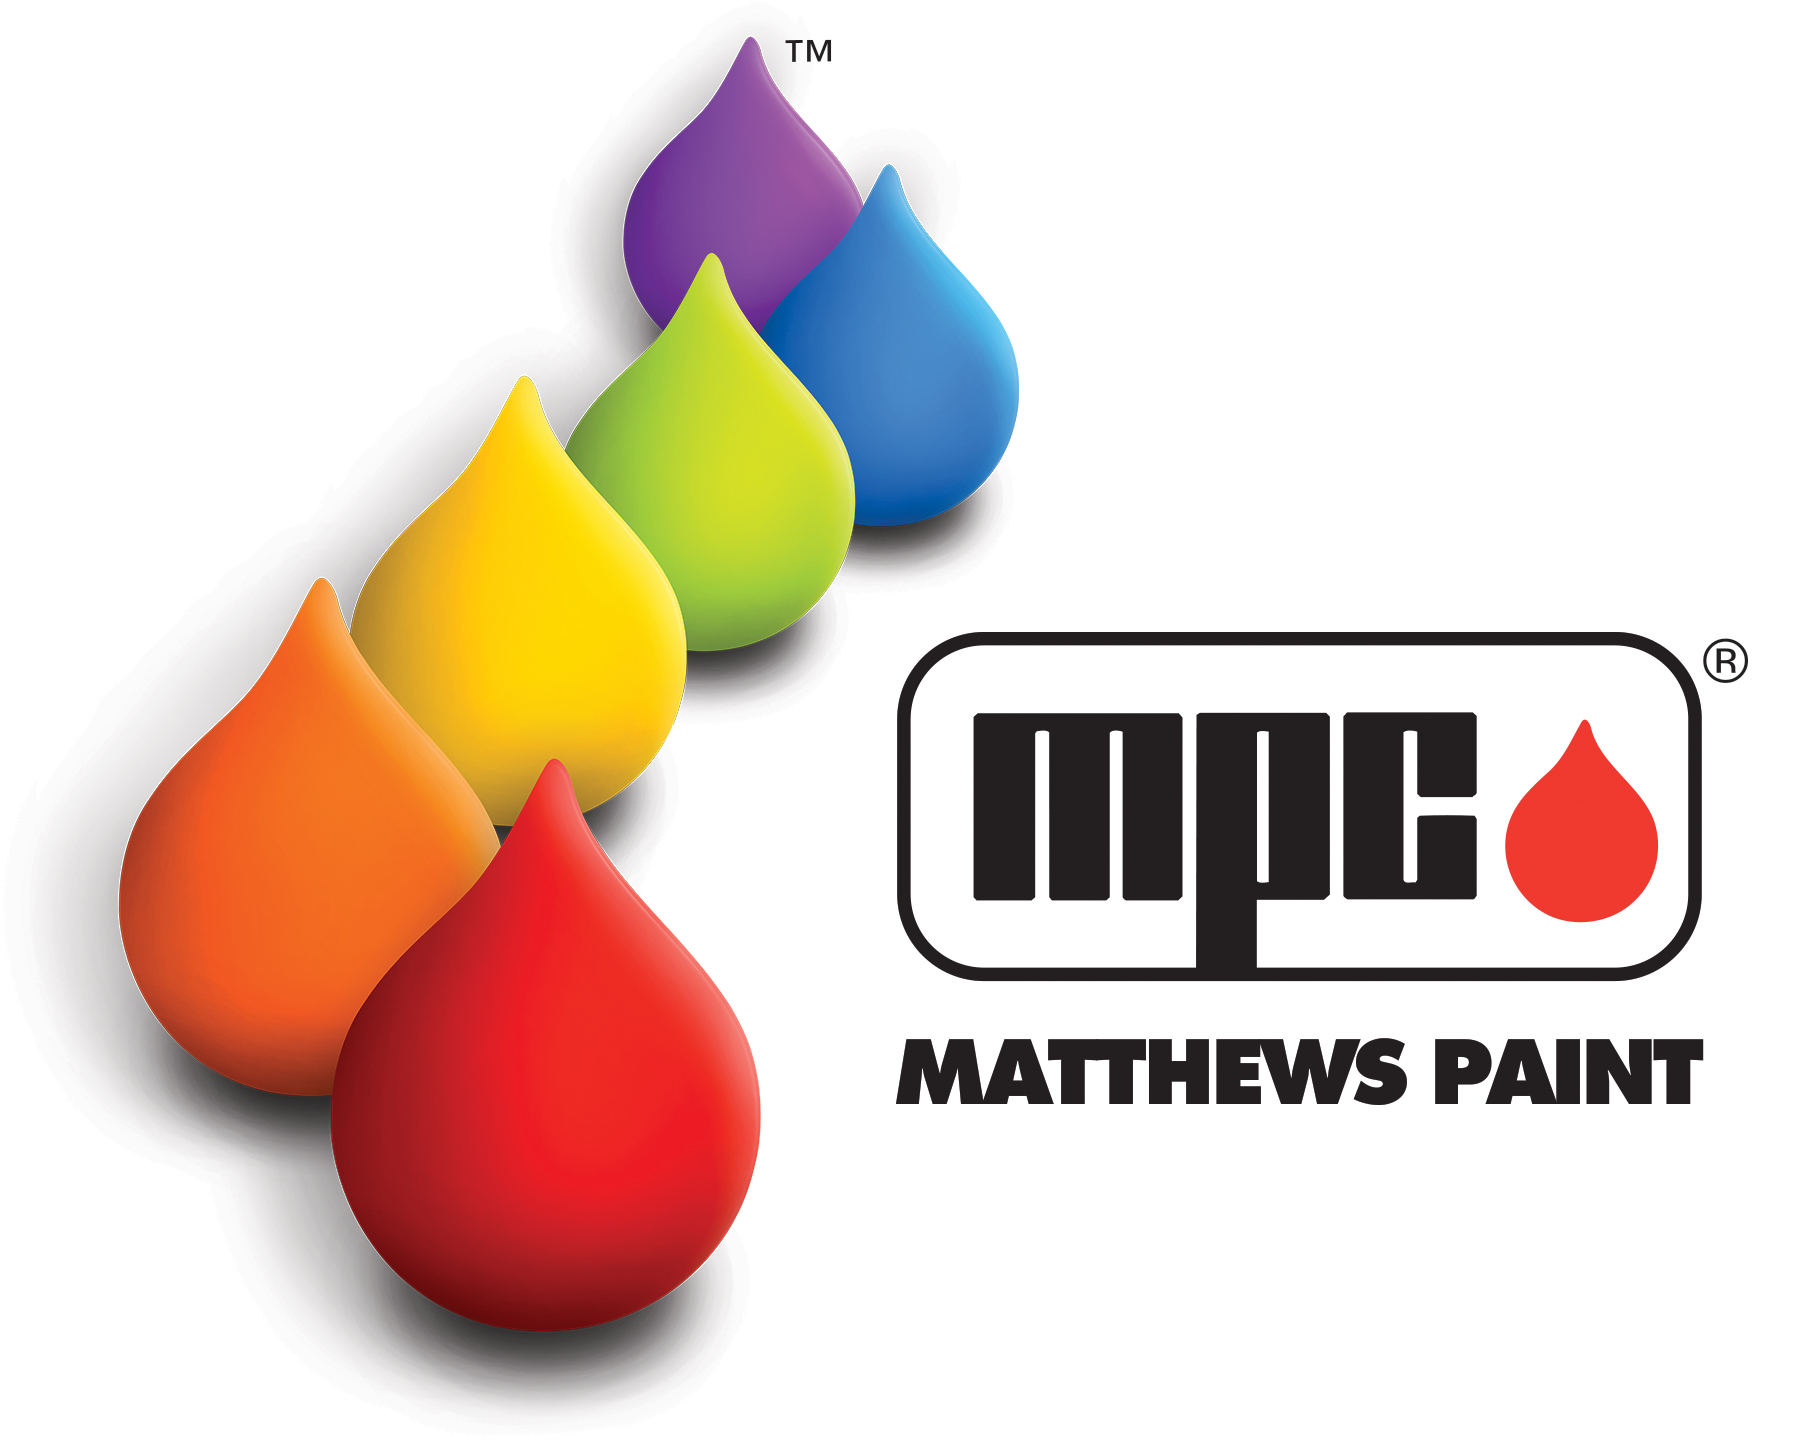 Matthews paint / Boston is in which state